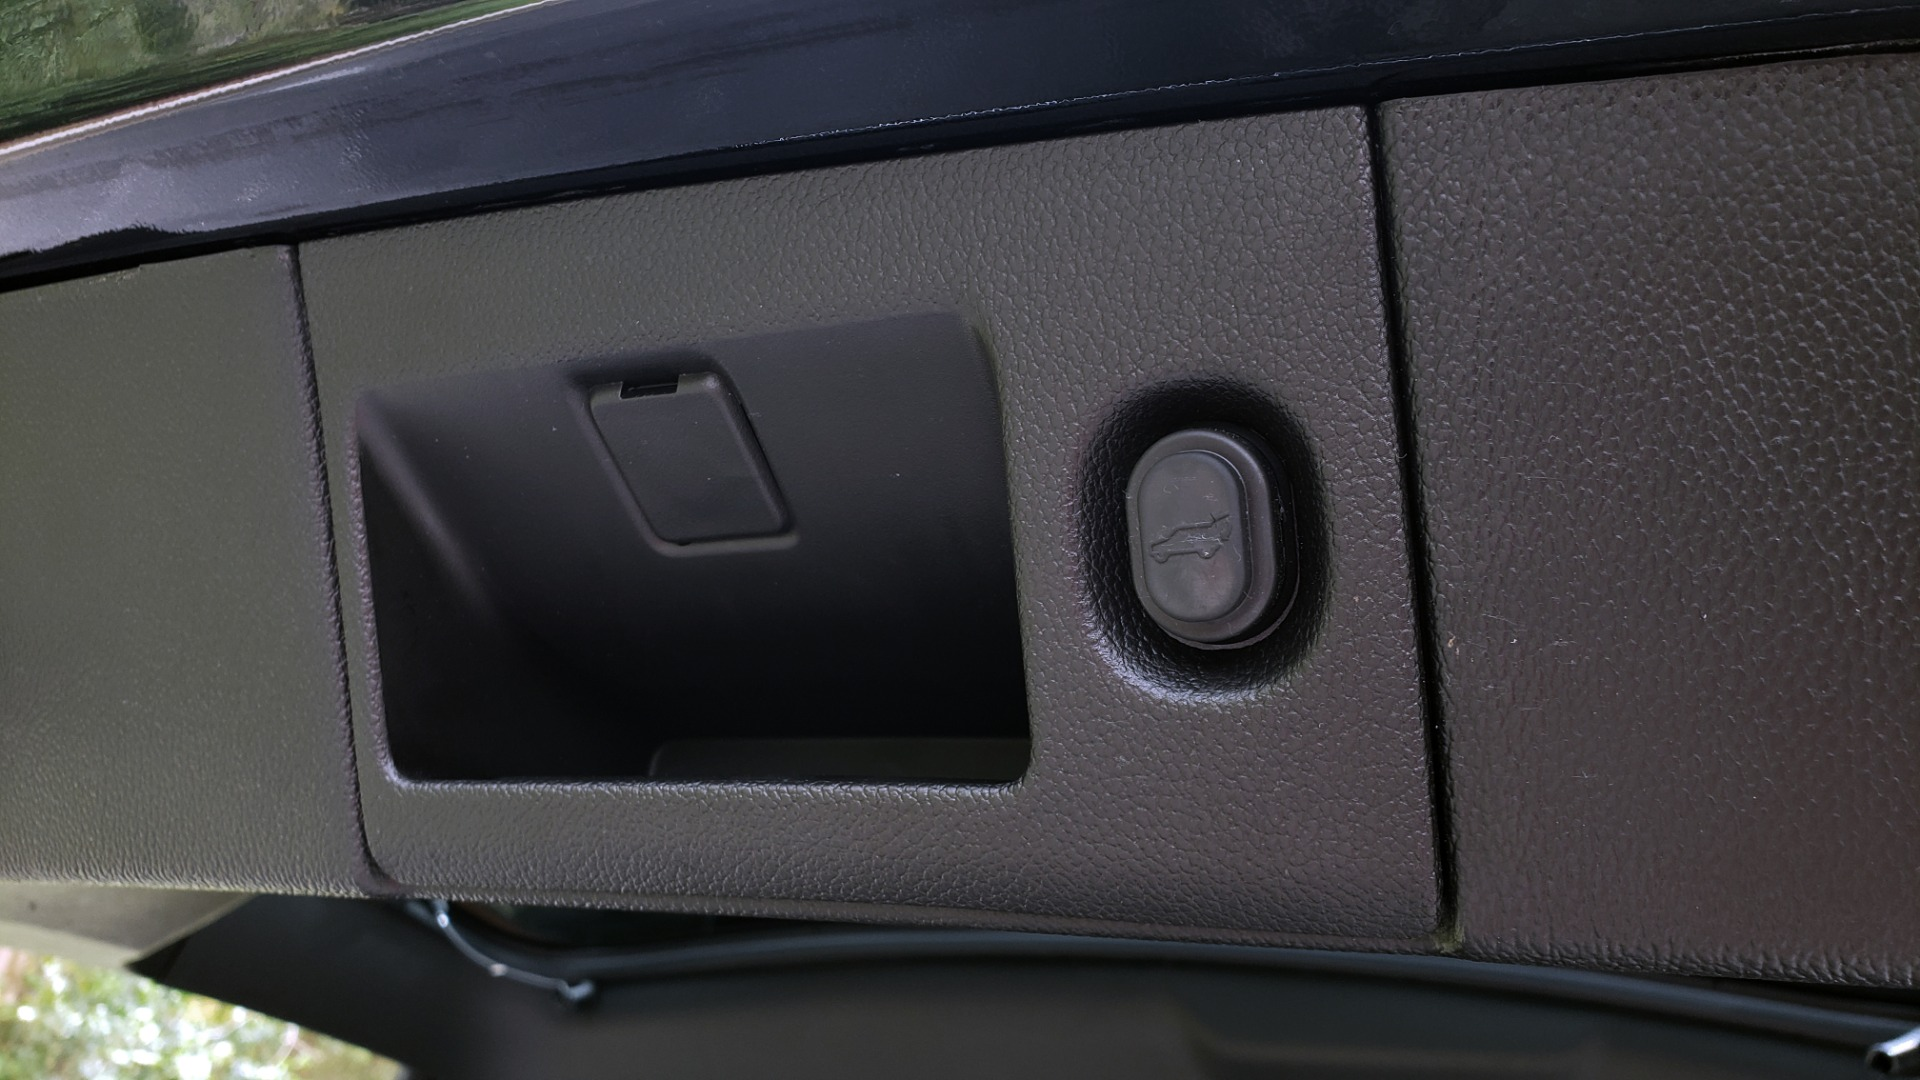 Used 2017 GMC YUKON XL DENALI 4WD / NAV / SUNROOF / ENT / 3-ROWS / BOSE / REARVIEW for sale Sold at Formula Imports in Charlotte NC 28227 20